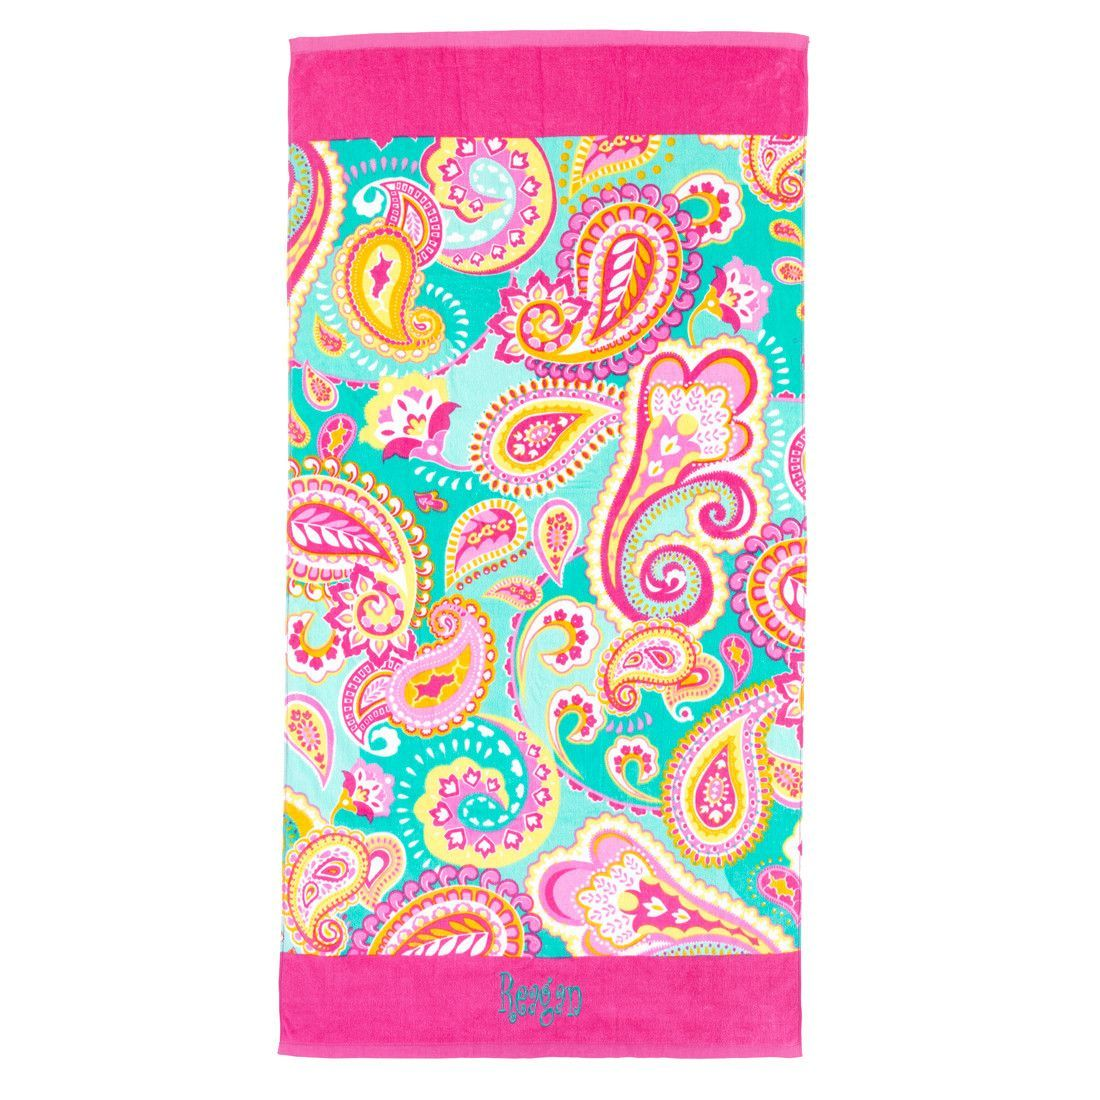 Monogrammed Beach Towel Products Monogrammed beach